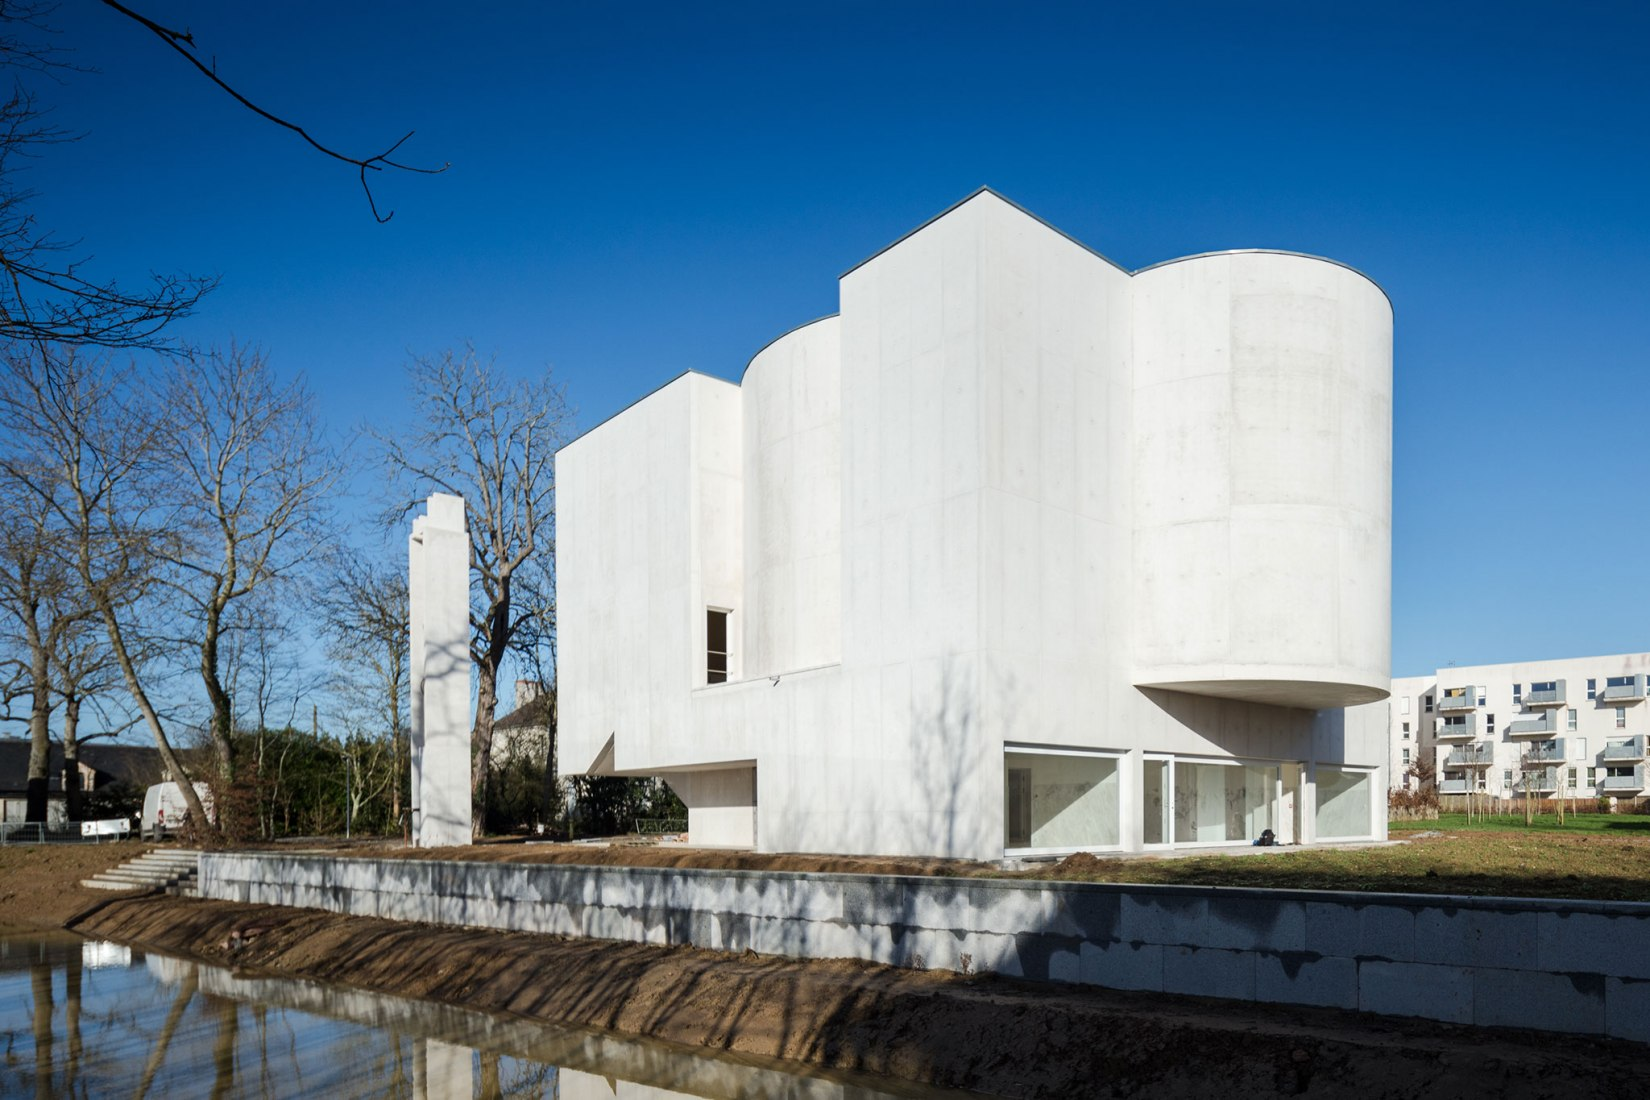 Exterior view. Álvaro Siza designs the Saint-Jacques-de-la-Lande church. Photograph © Joao Morgado